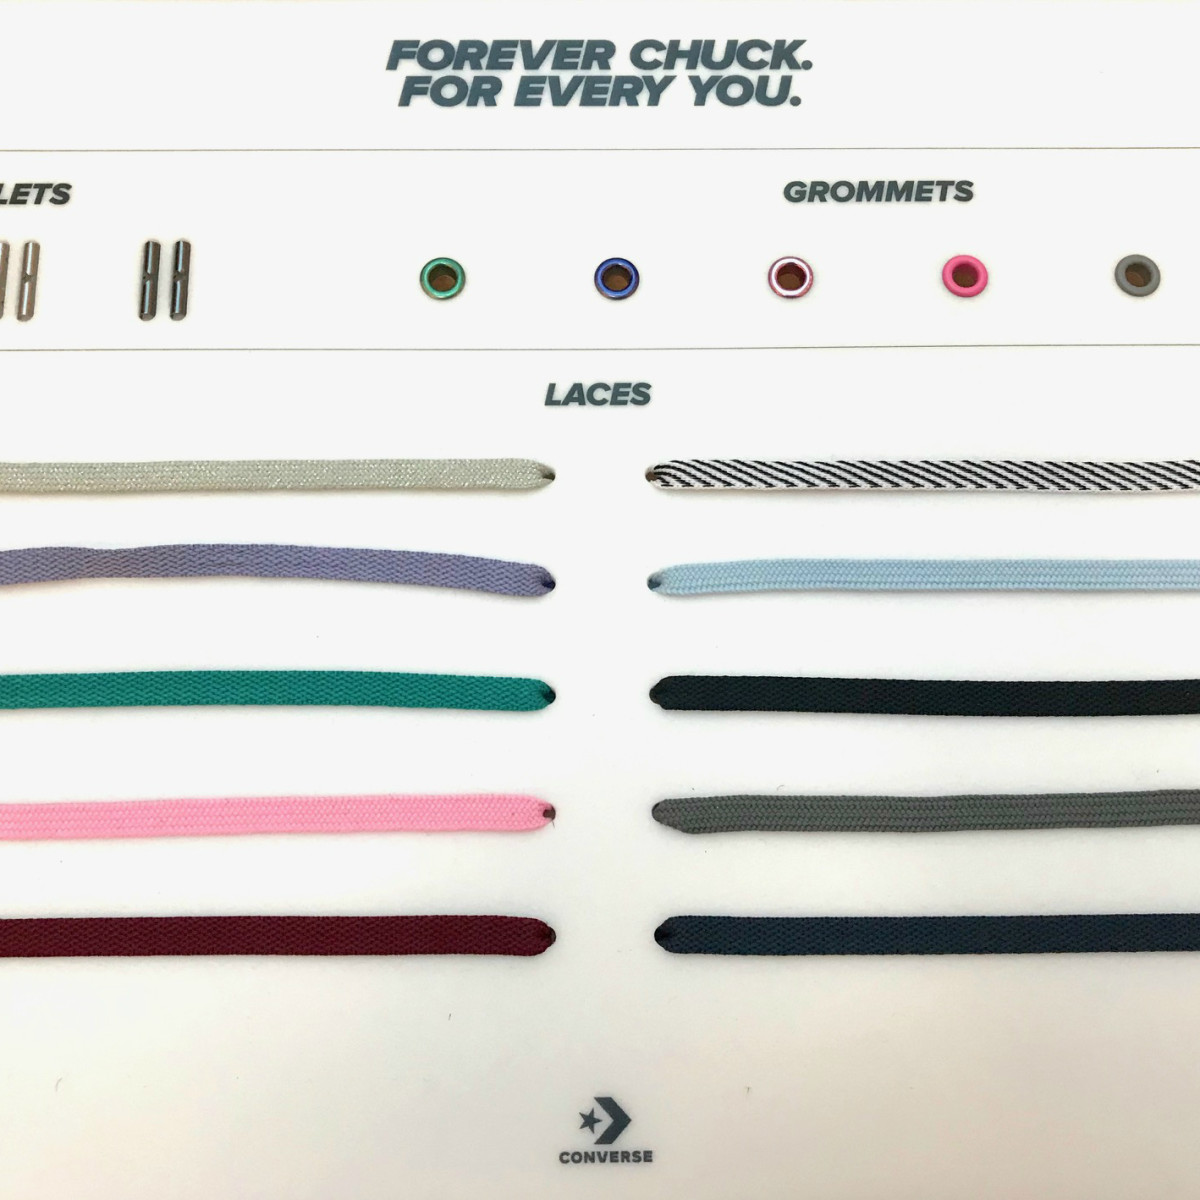 Chucks by You - lace options